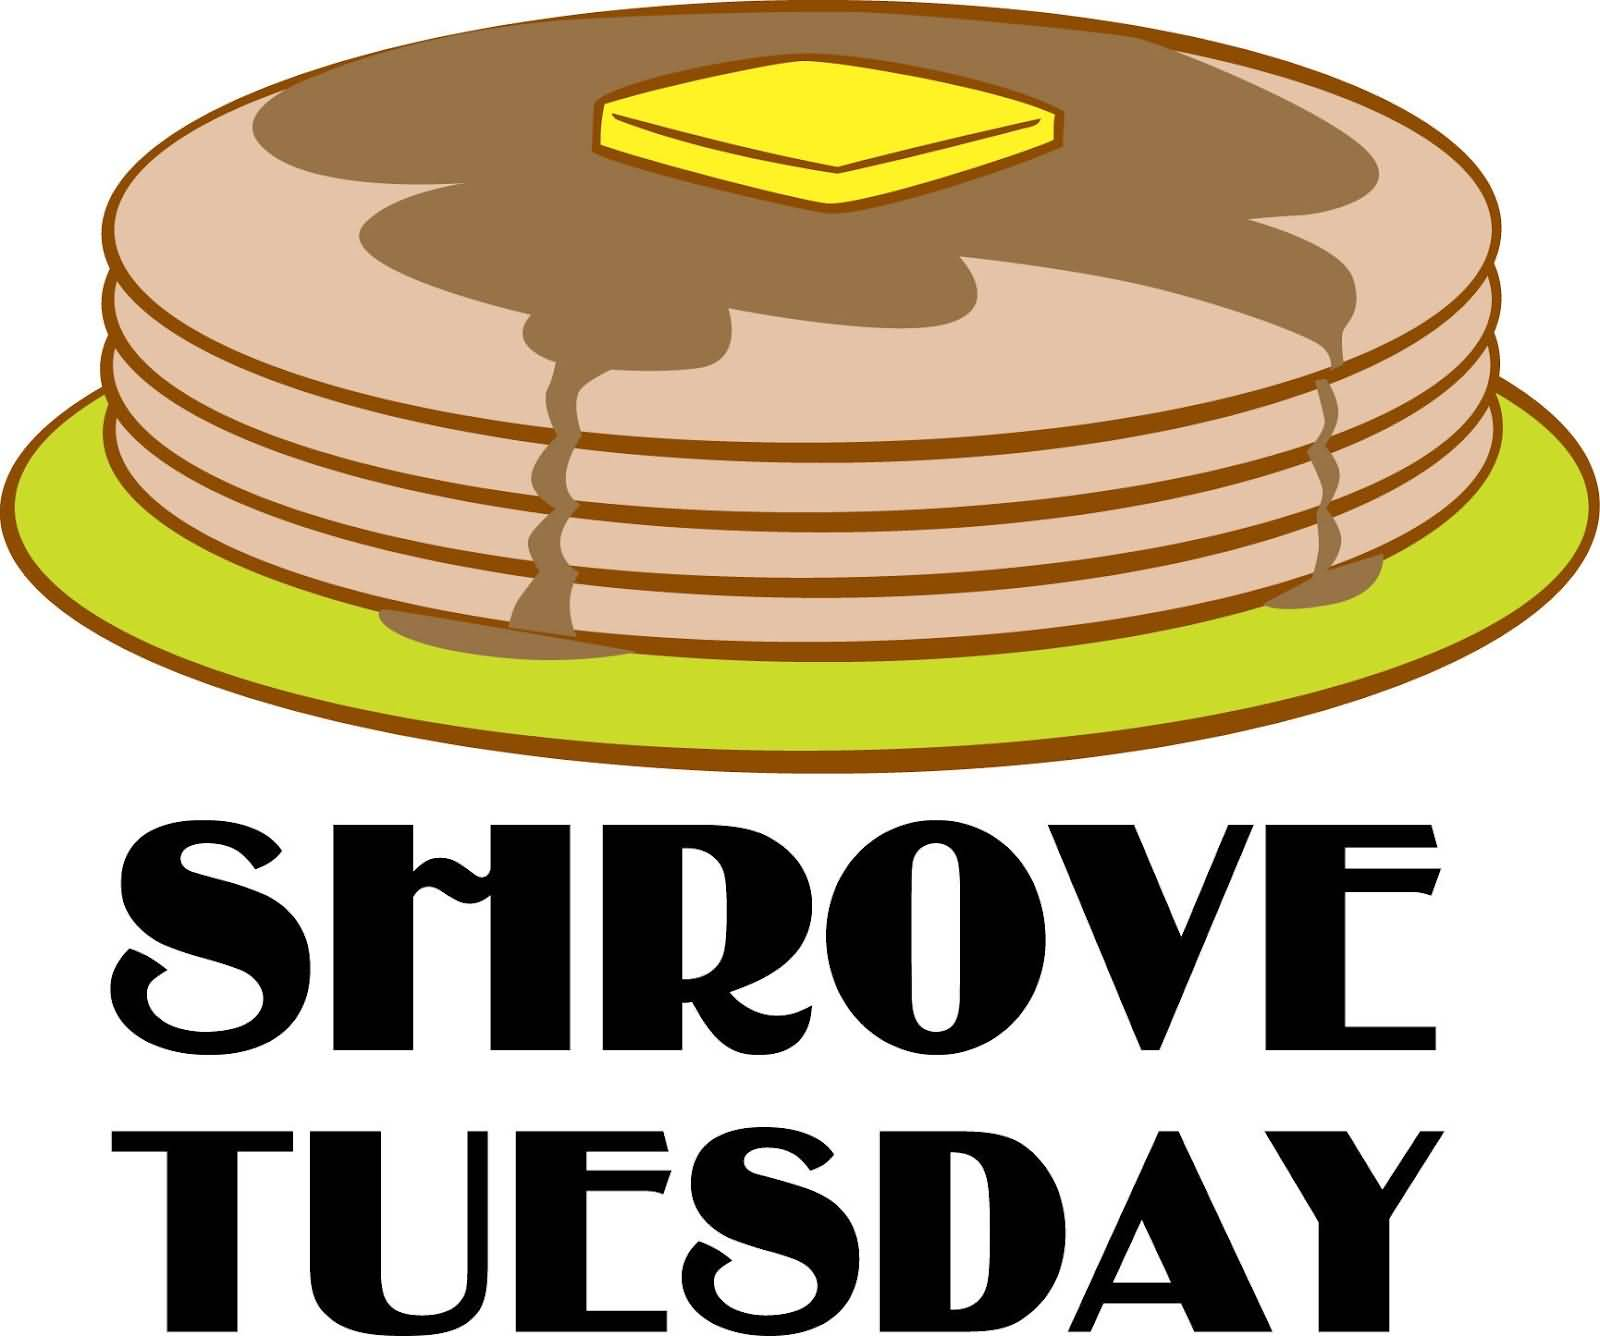 22 Shrove Tuesday Wish Pictures And Images